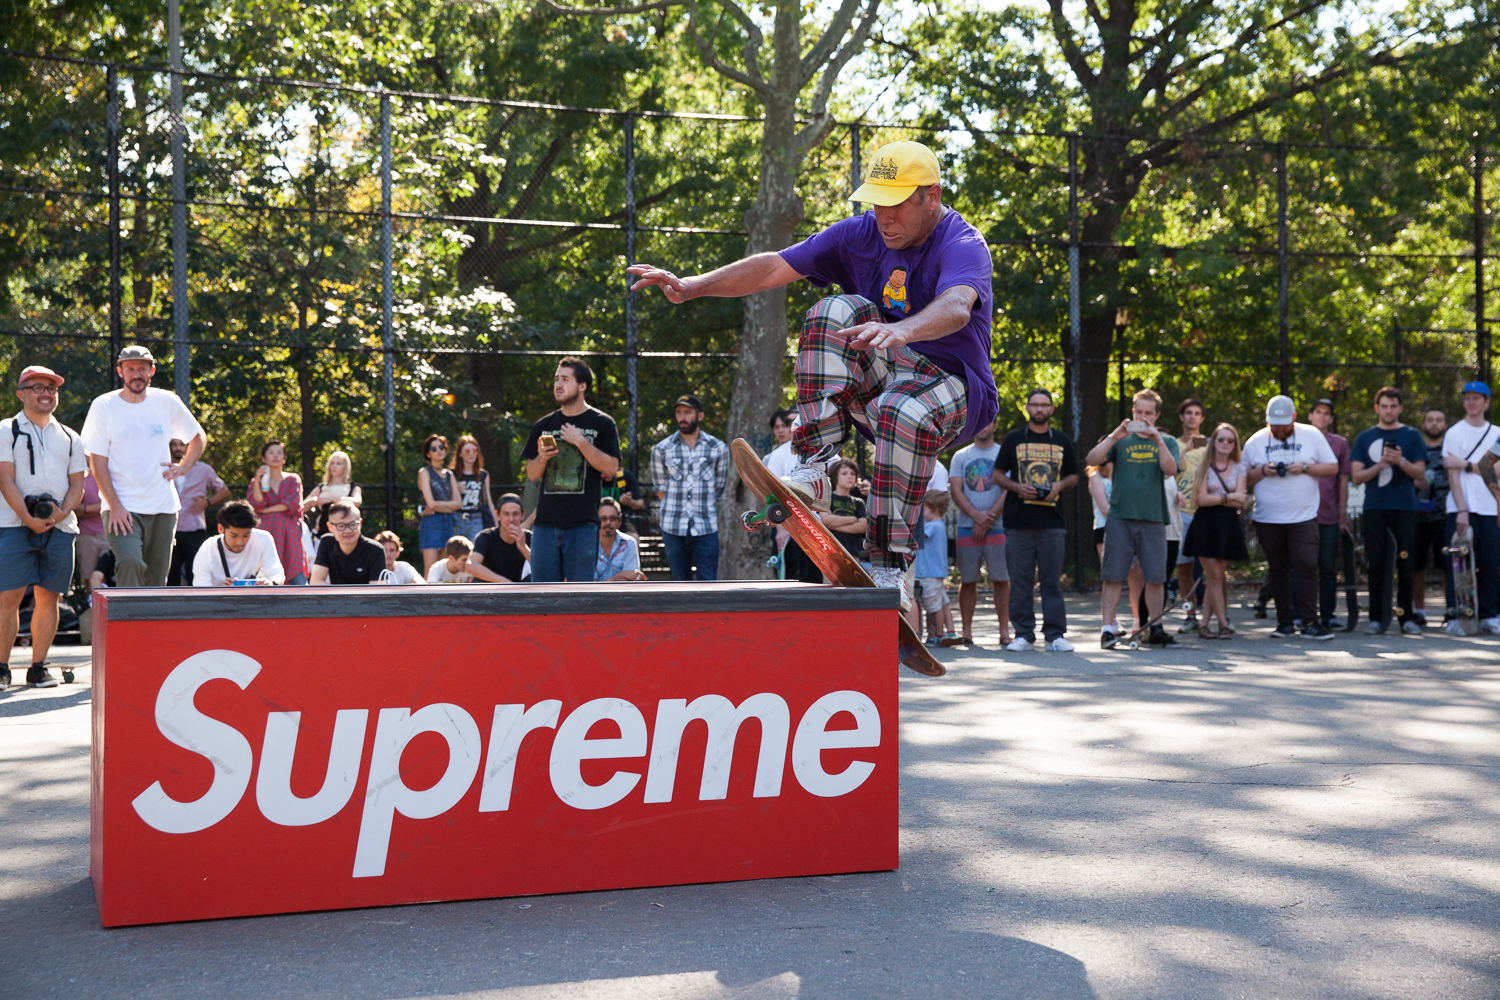 Mark Gonzales wallies up onto the Supreme box.